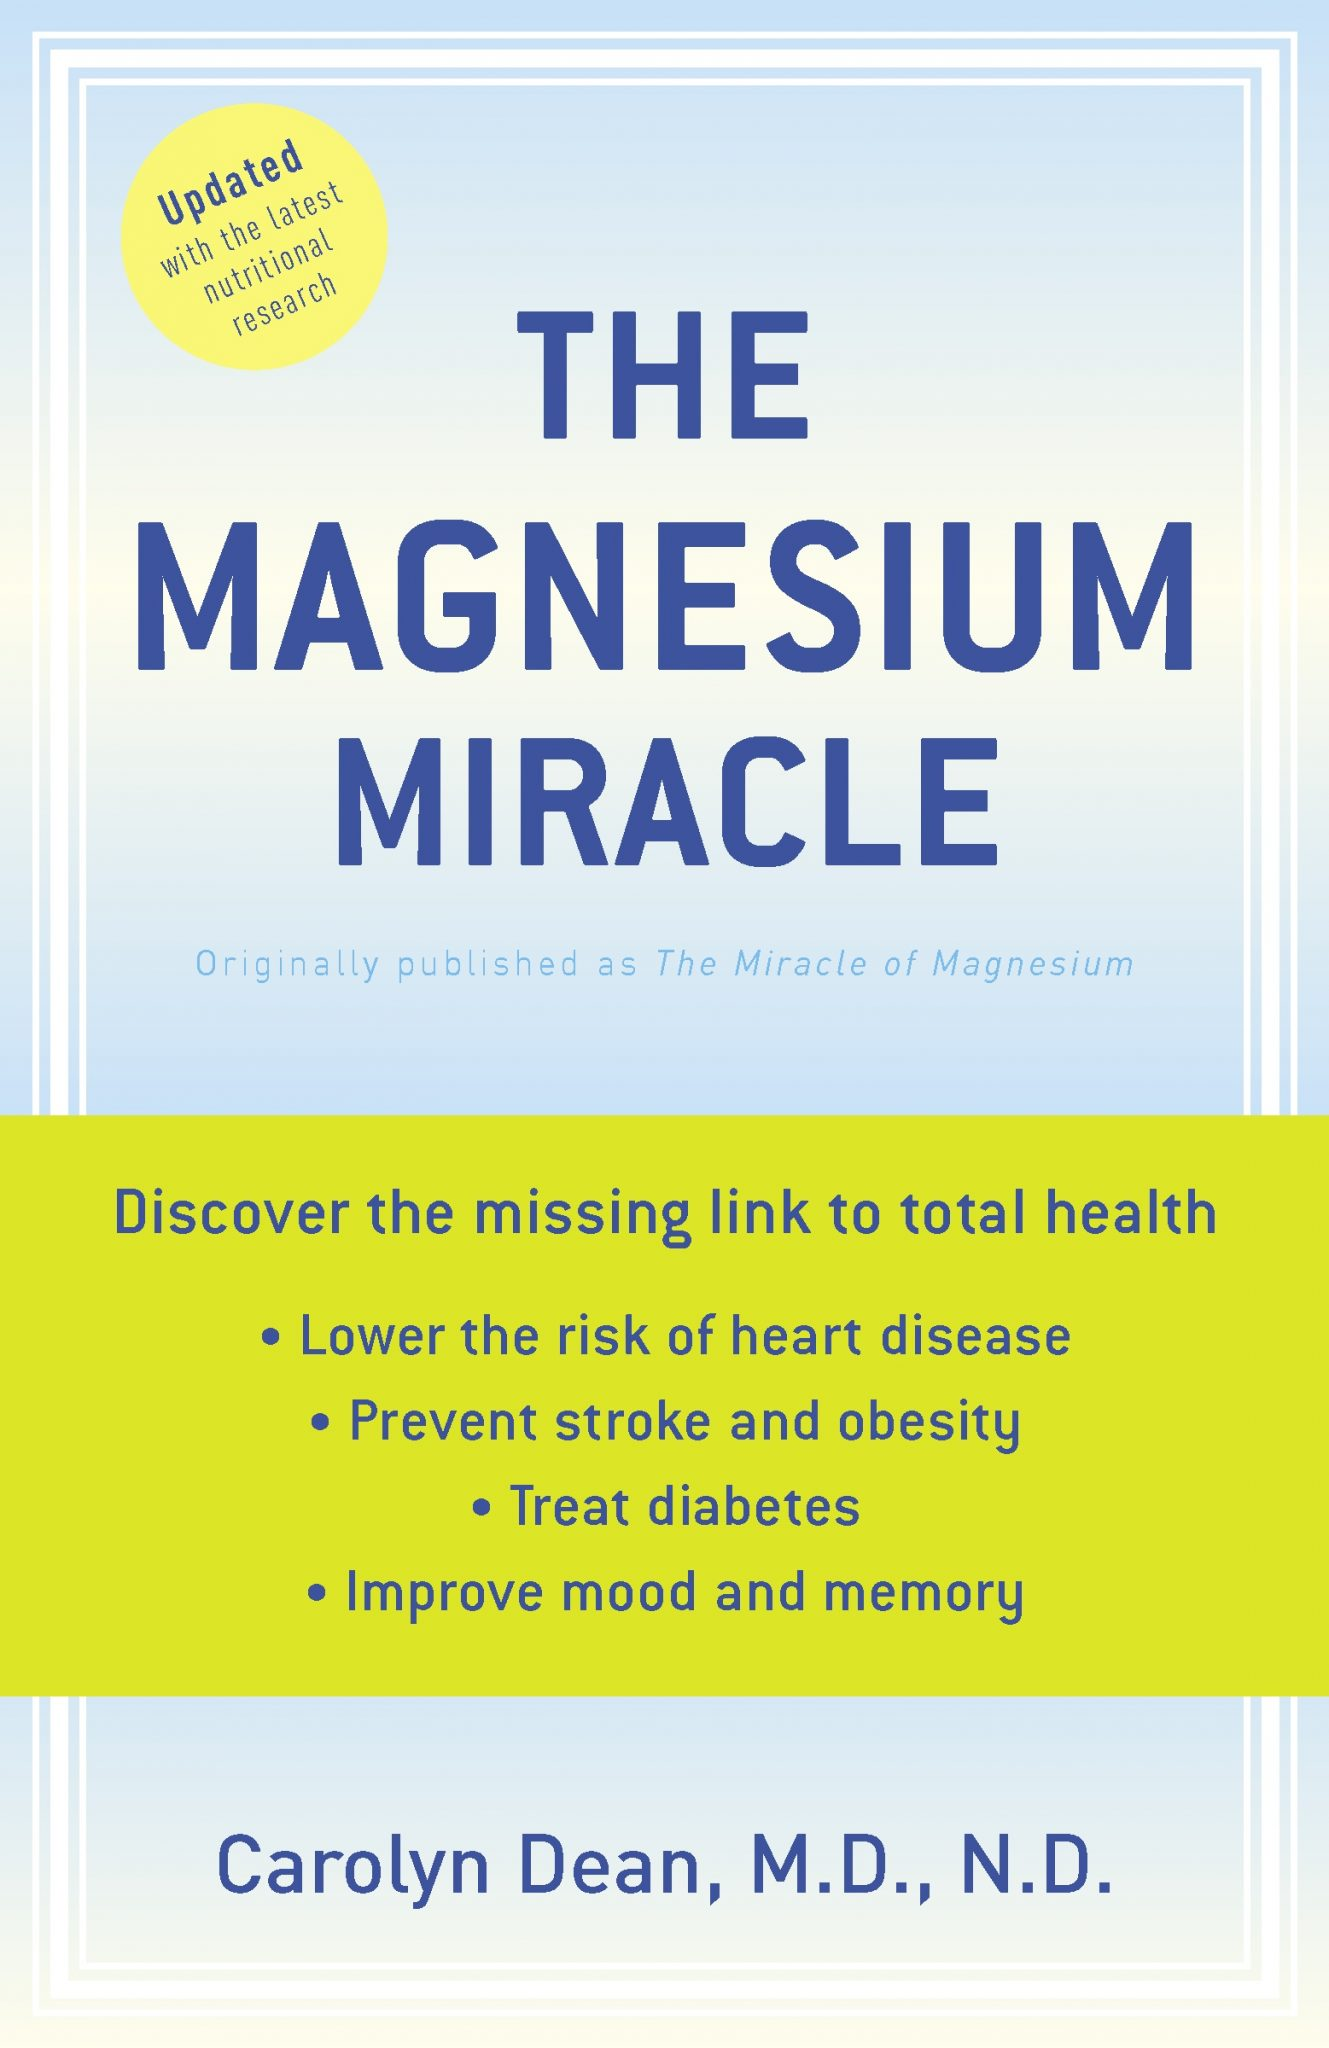 https://i0.wp.com/www.bengreenfieldfitness.com/wp-content/uploads/2009/07/MAGNESIUM-MIRACLE.cover.jpg